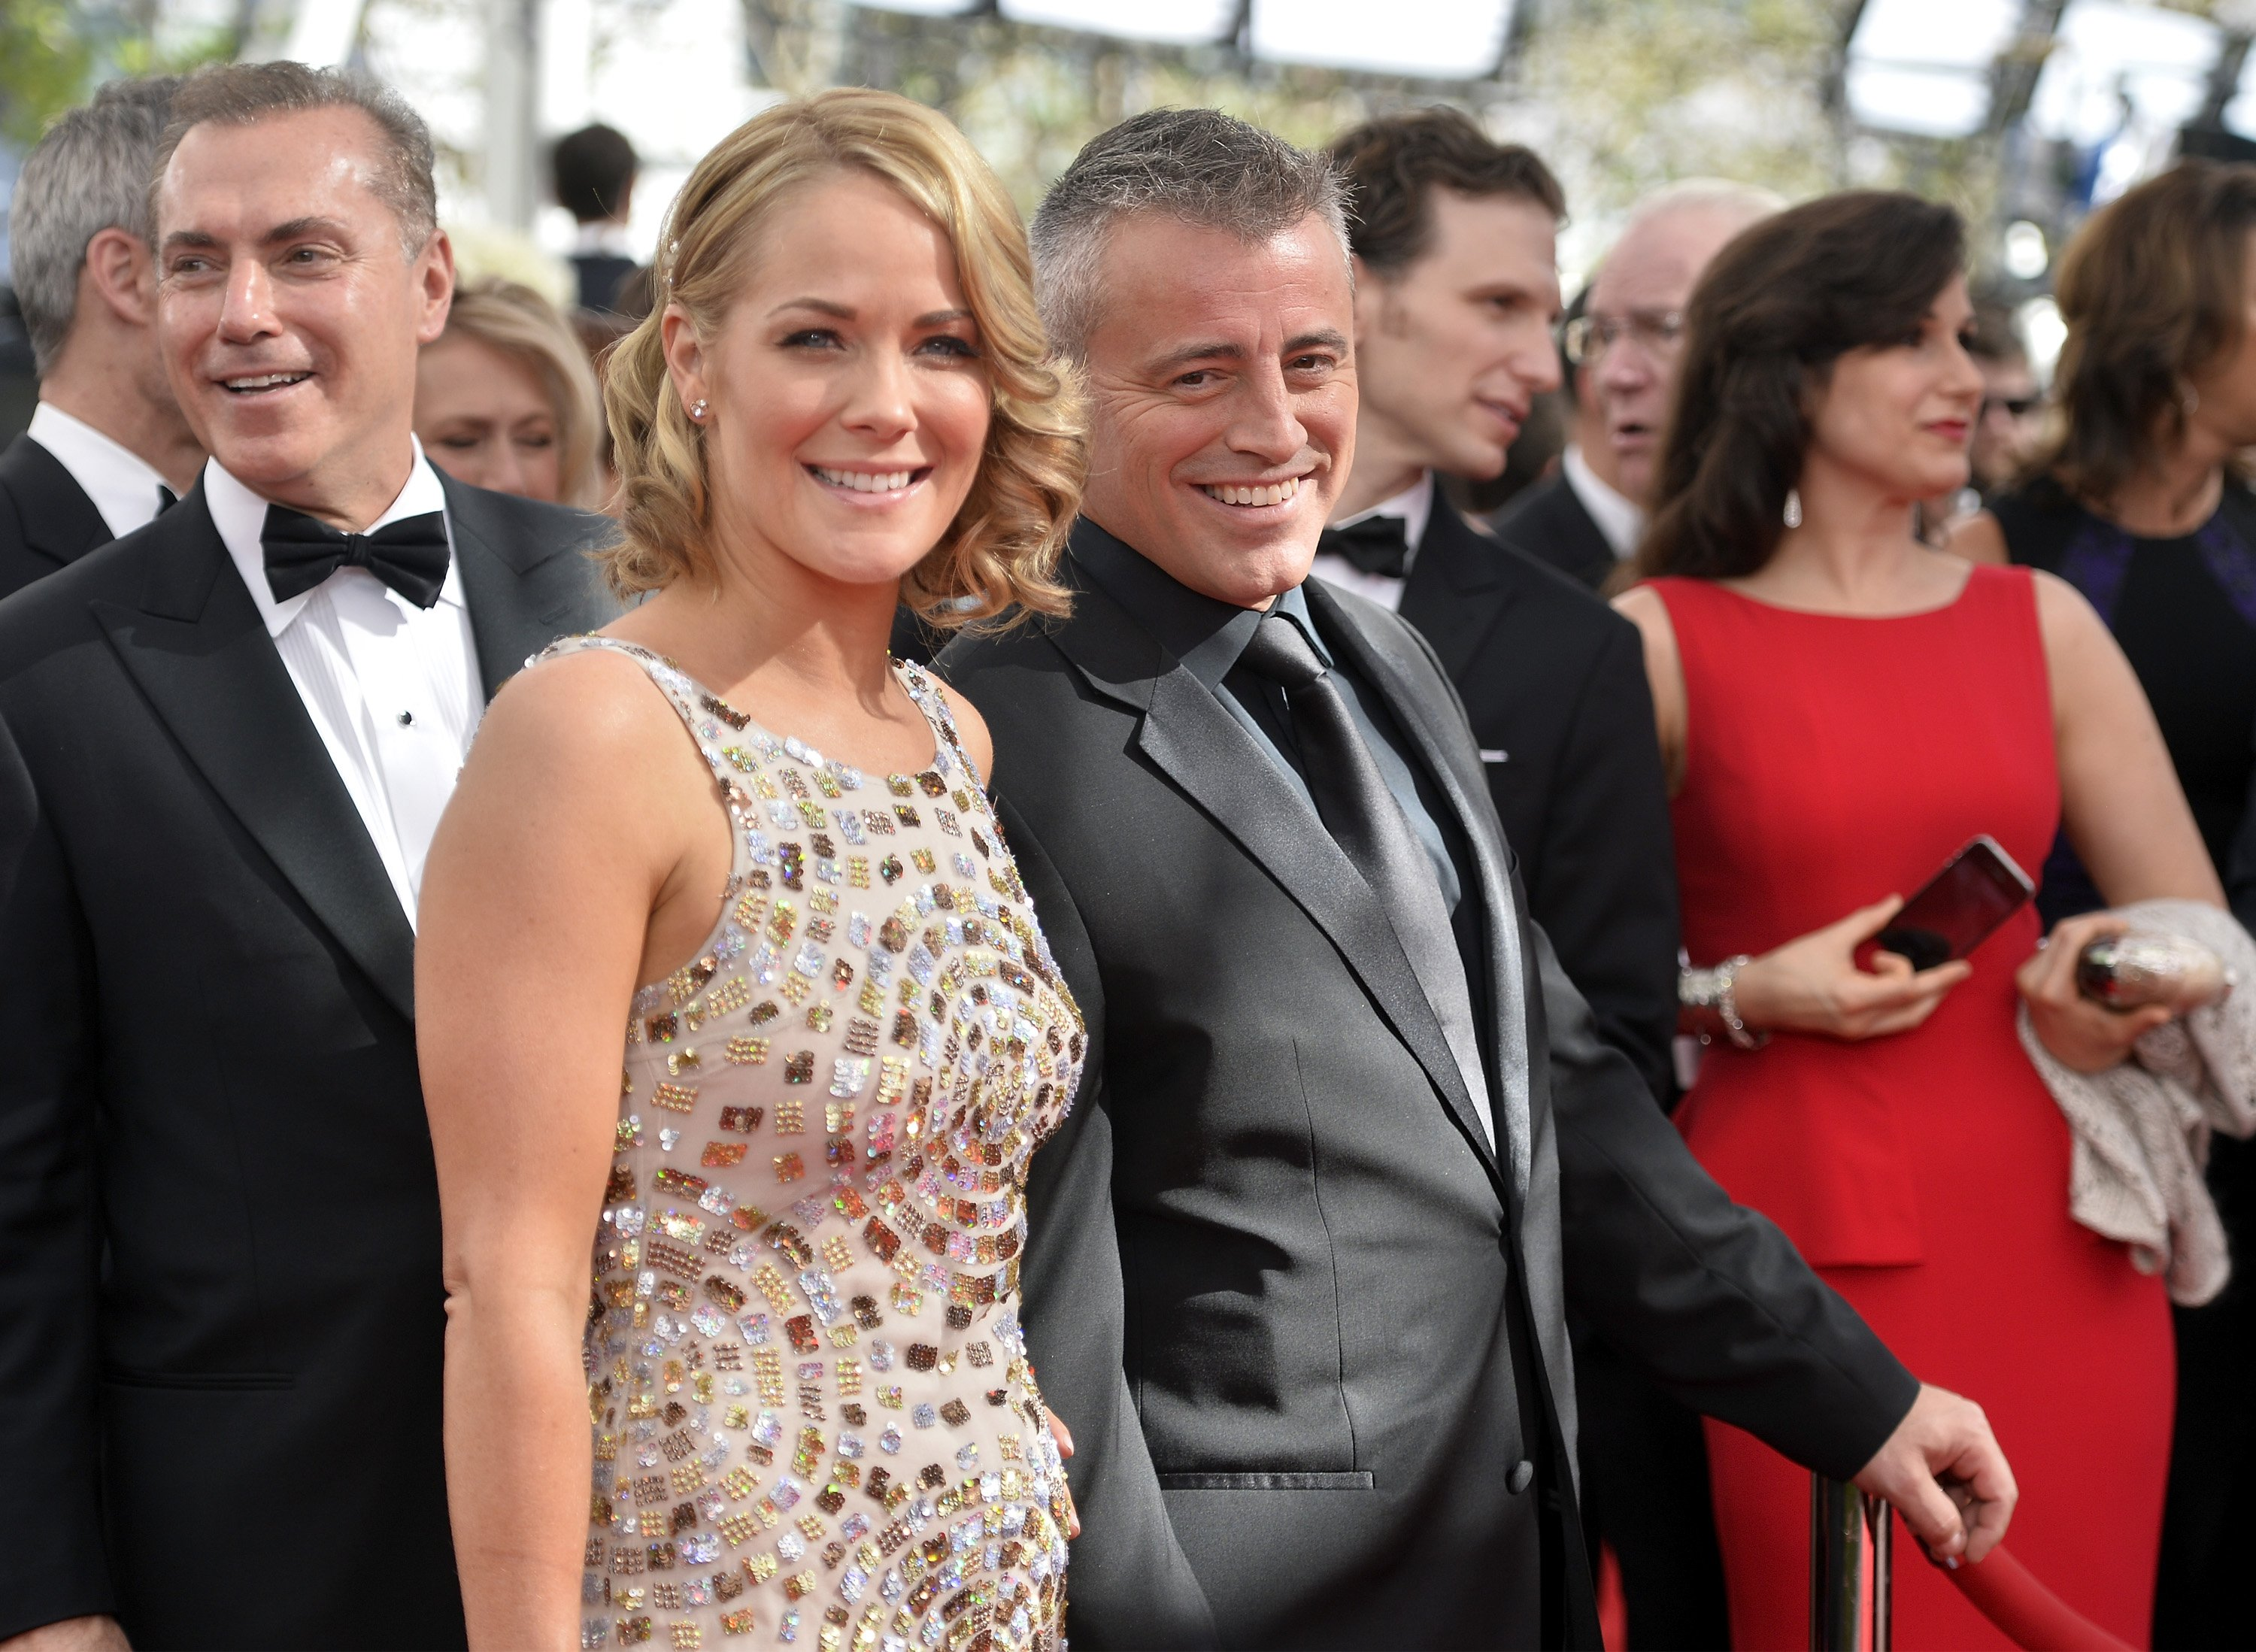 Matt LeBlanc and Andrea Anders arrive at the 65th Annual Primetime Emmy Awards held at Nokia Theatre L.A. Live on September 22, 2013 in Los Angeles, California. | Source: Getty Images.